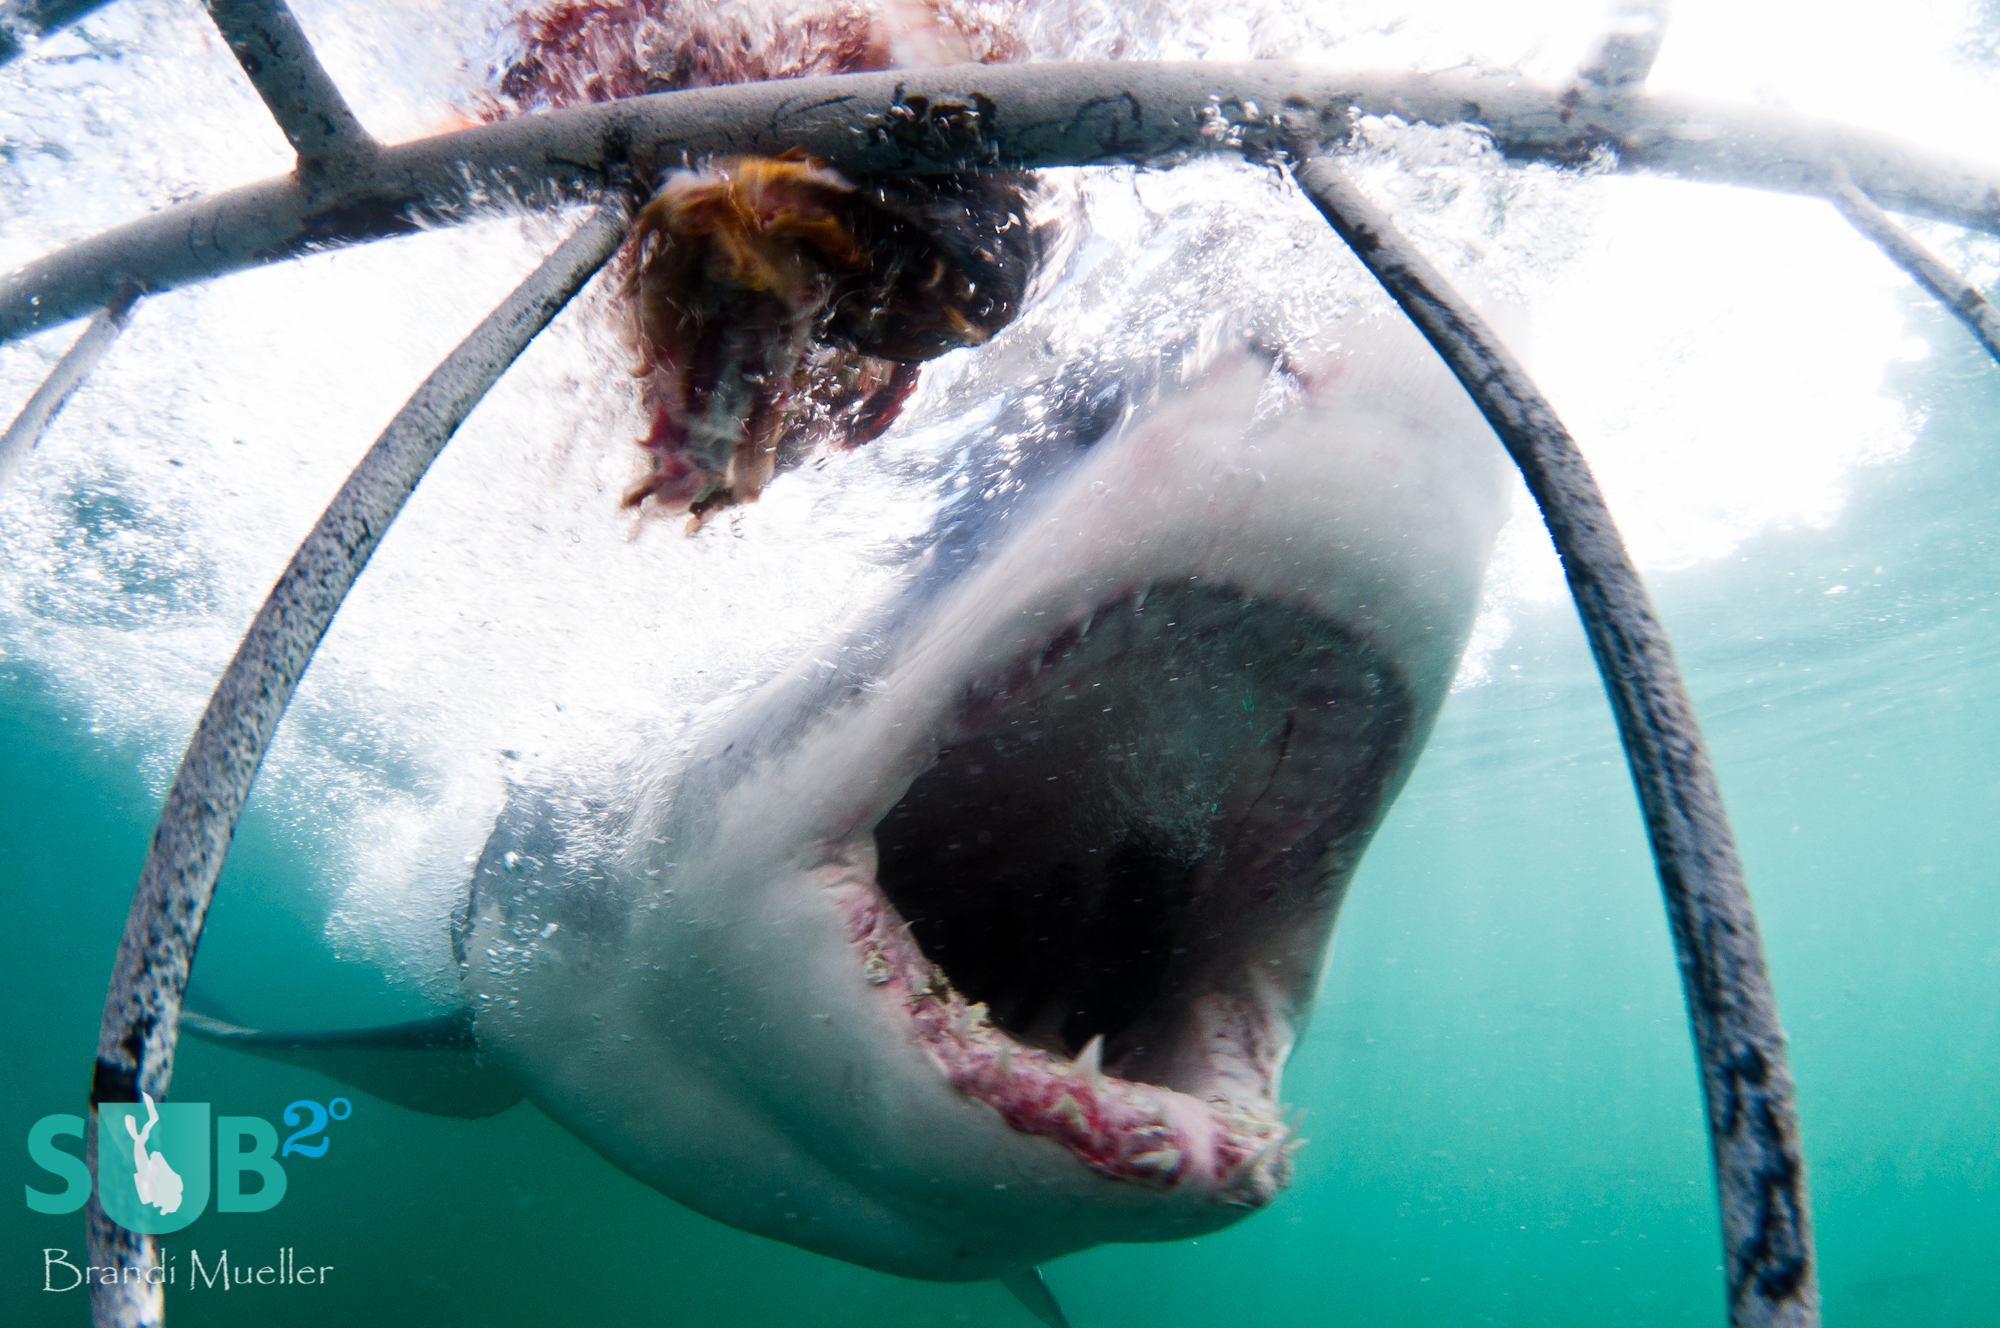 With its mouth wide open, this great white shark smiles for the camera.